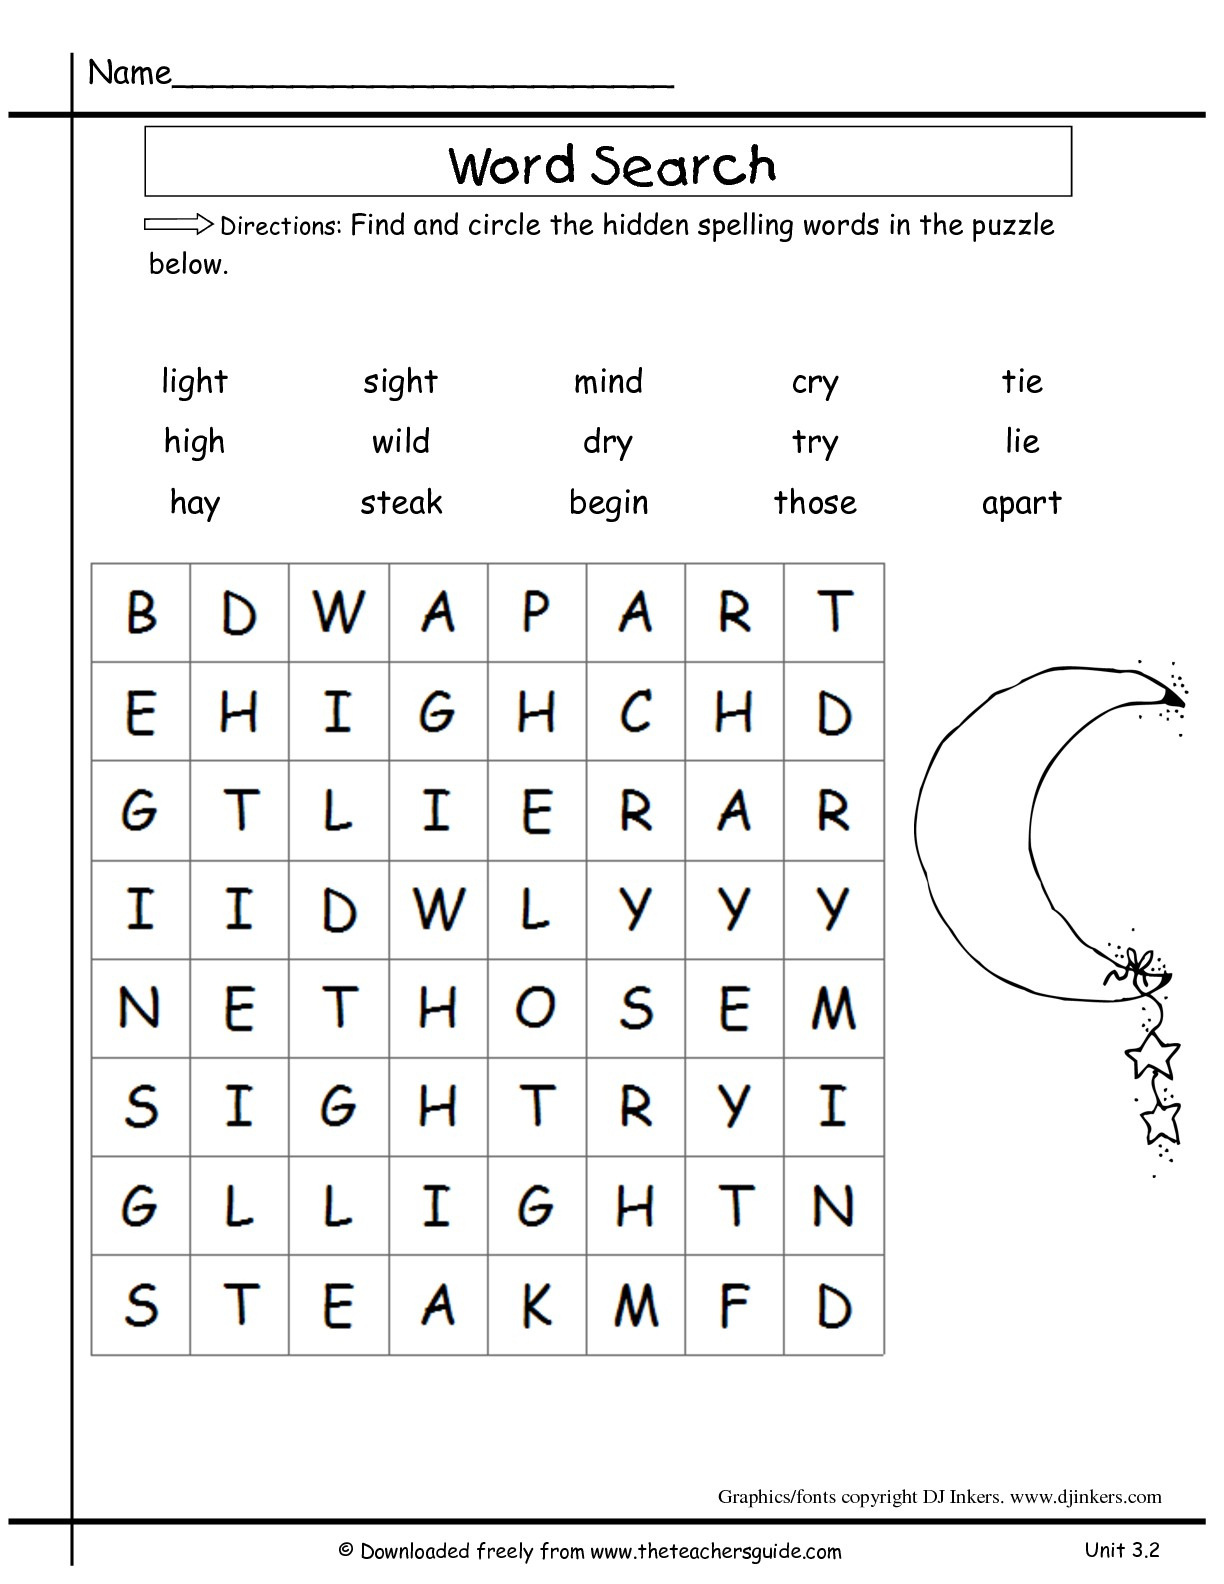 Second Grade Word Search Puzzles Printable